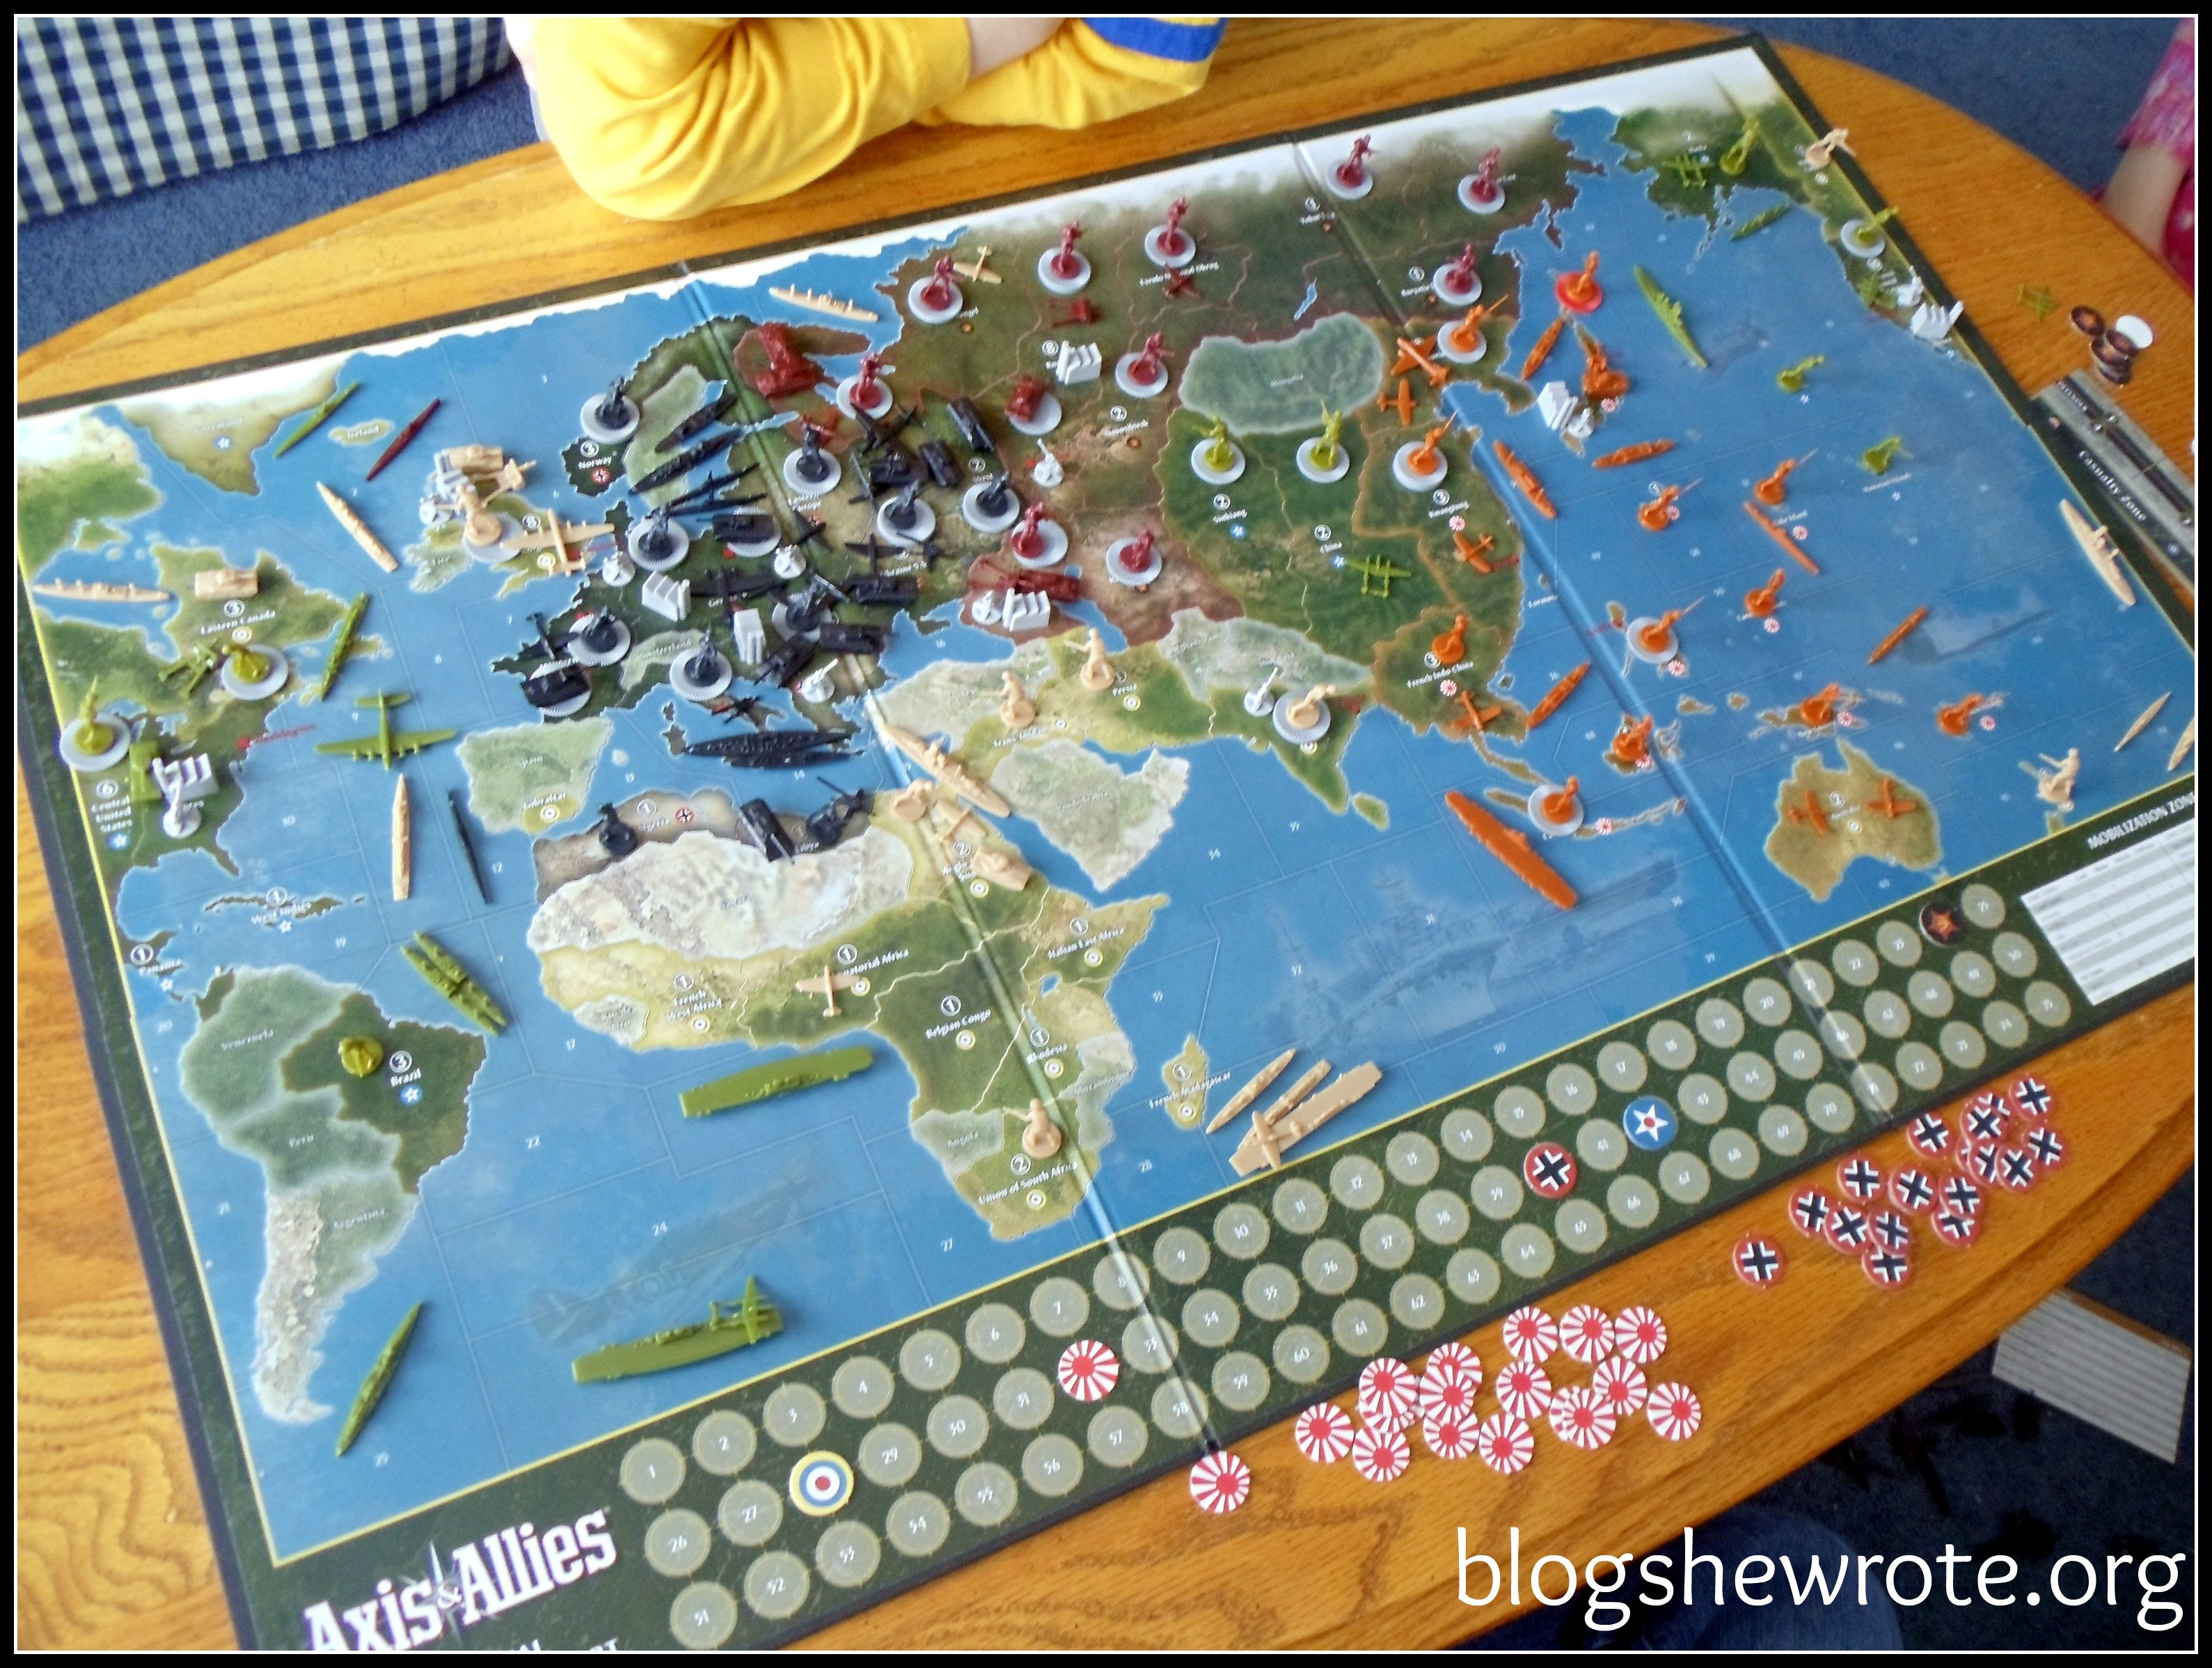 Blog, She Wrote: 100 Family Games for Kids of All Ages